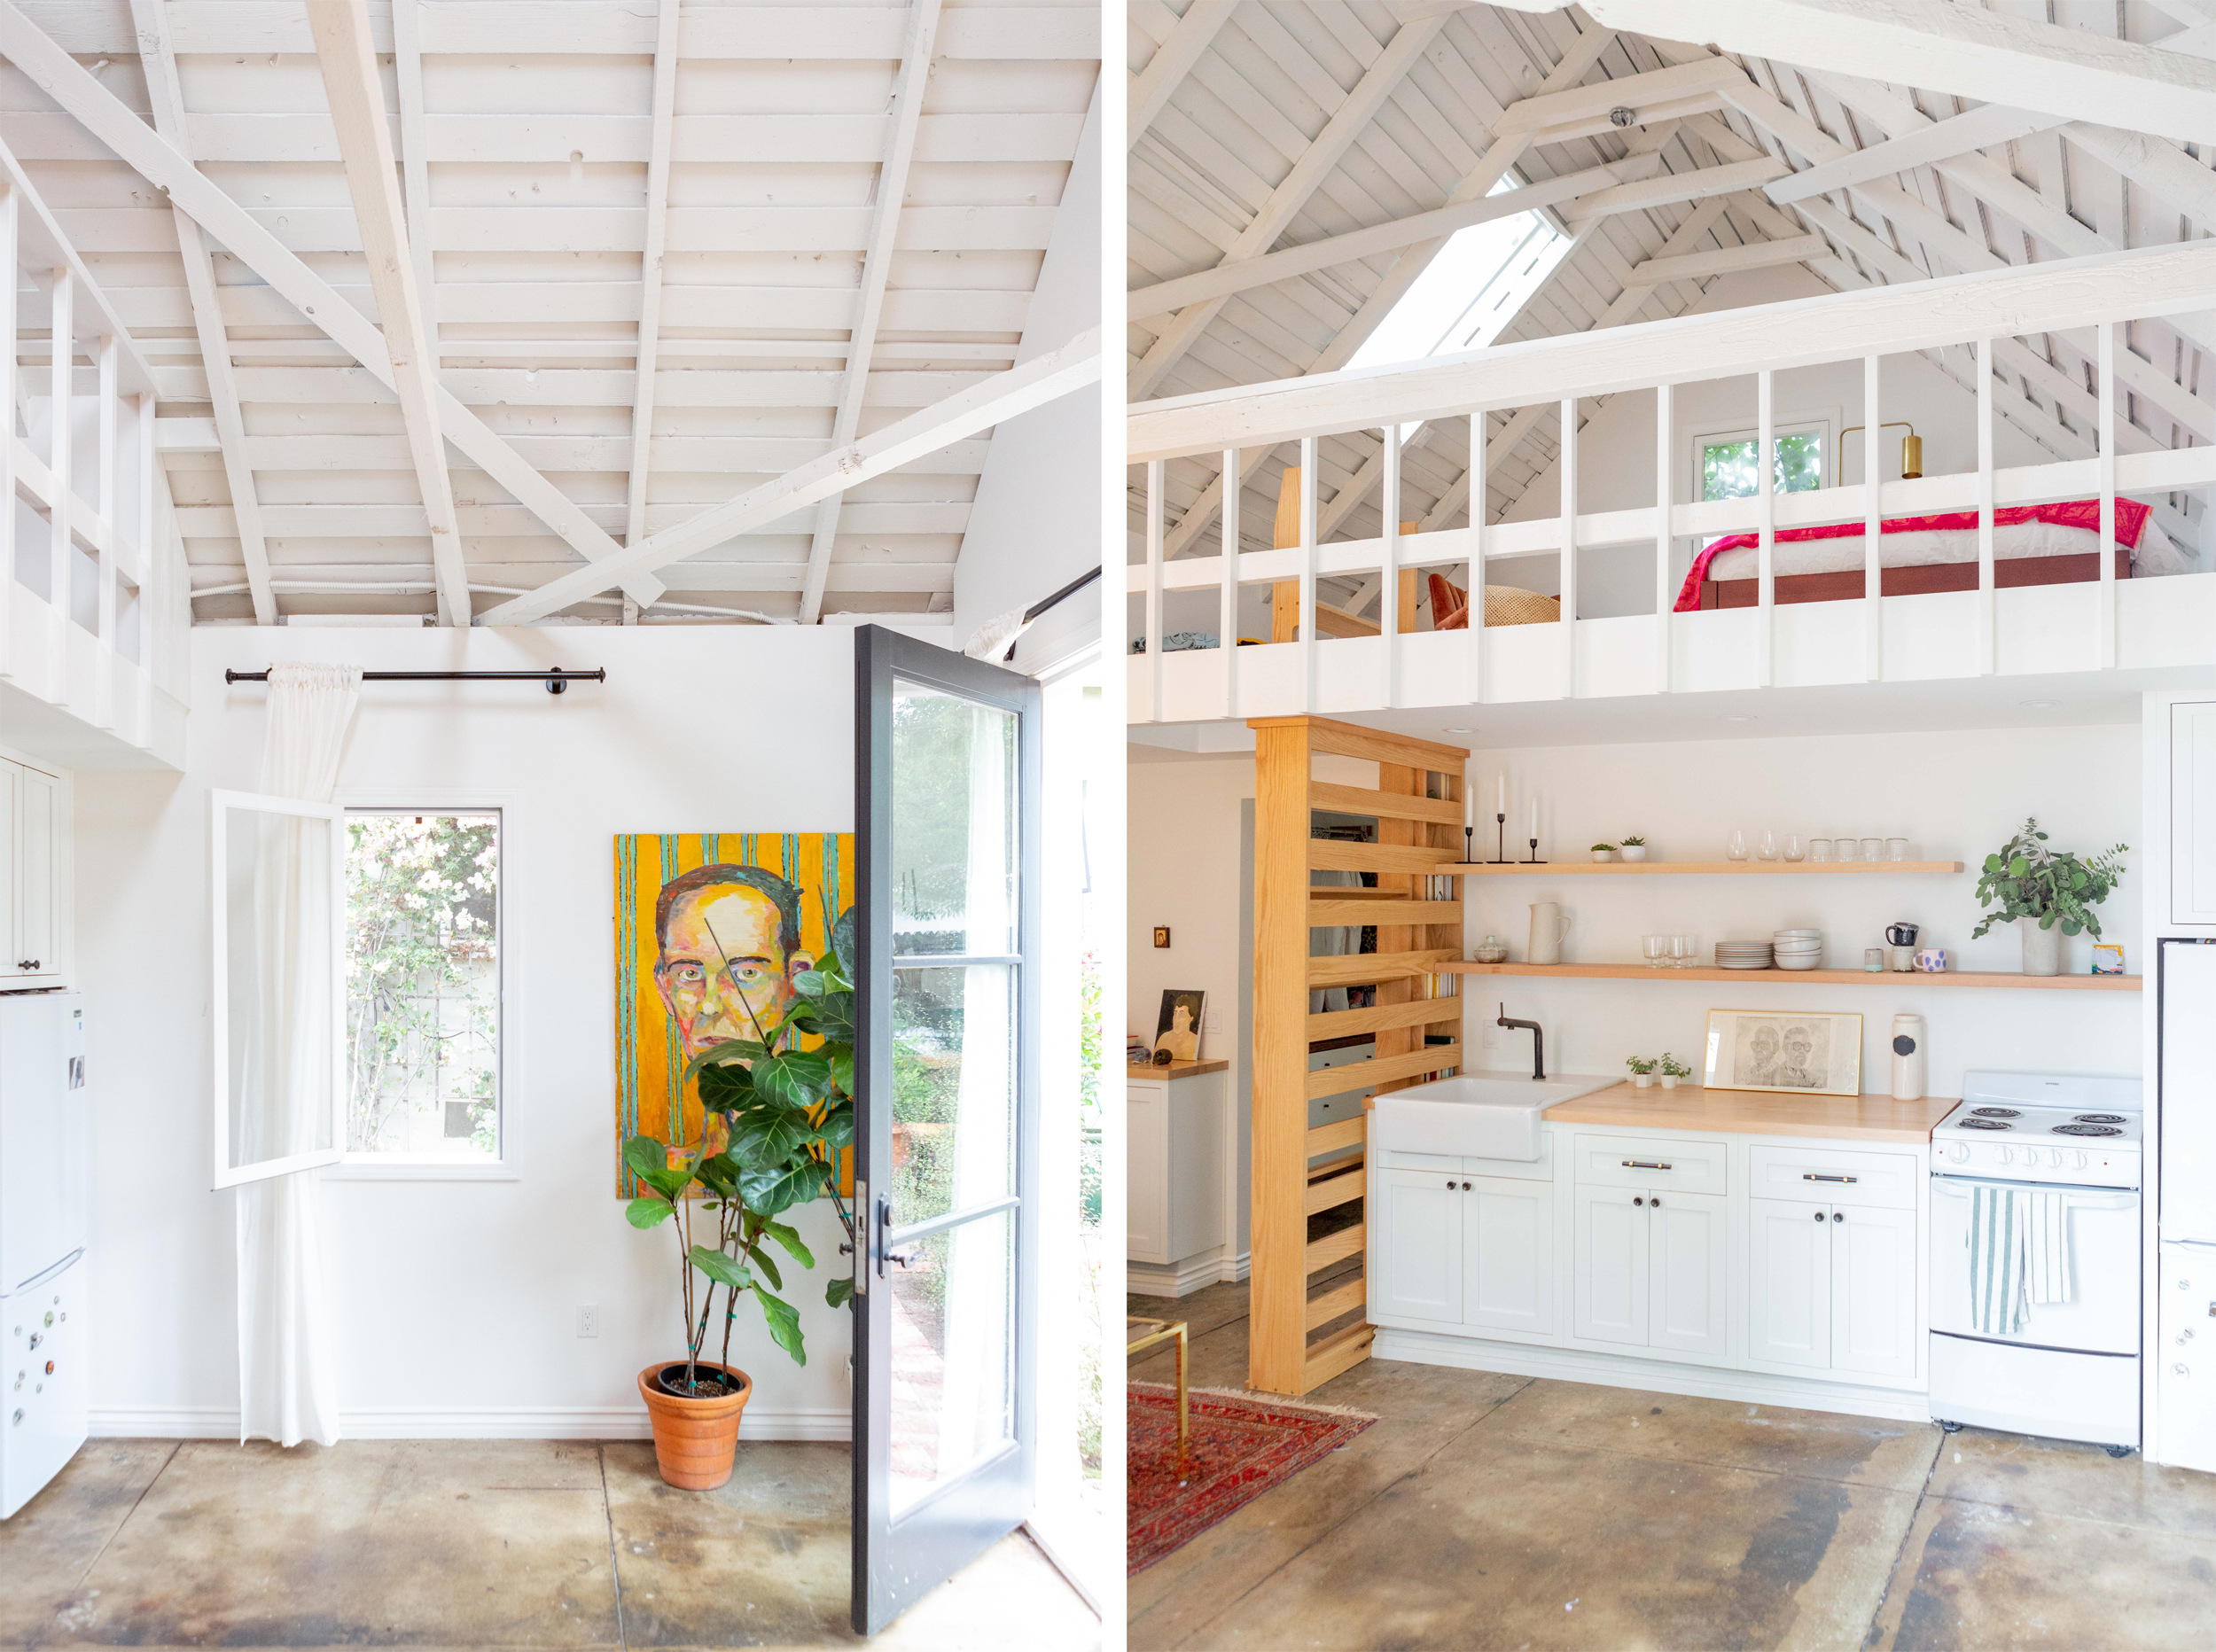 A 400-Square-Foot Total Redesign of a Former Dilapidated Detached Garage